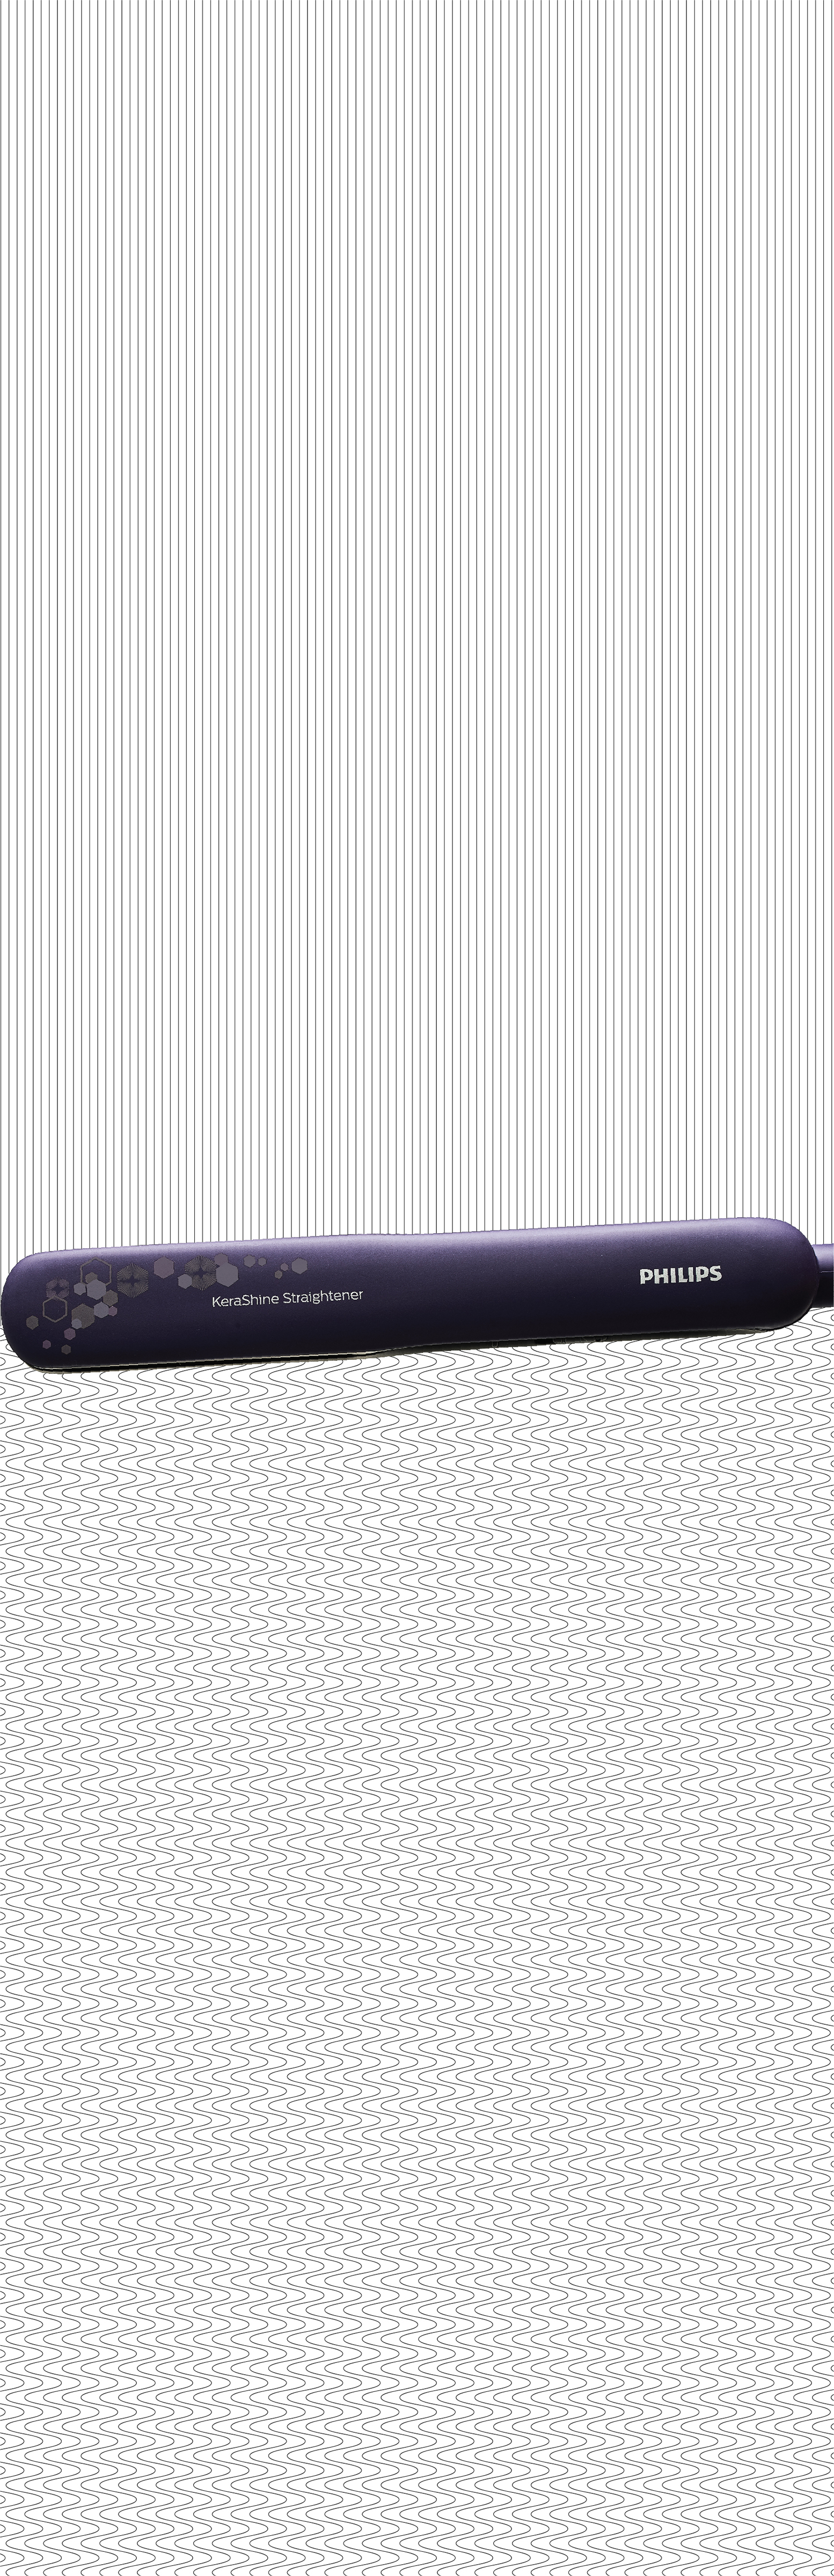 India_Philips_Hair Straightener_Curly.jpg